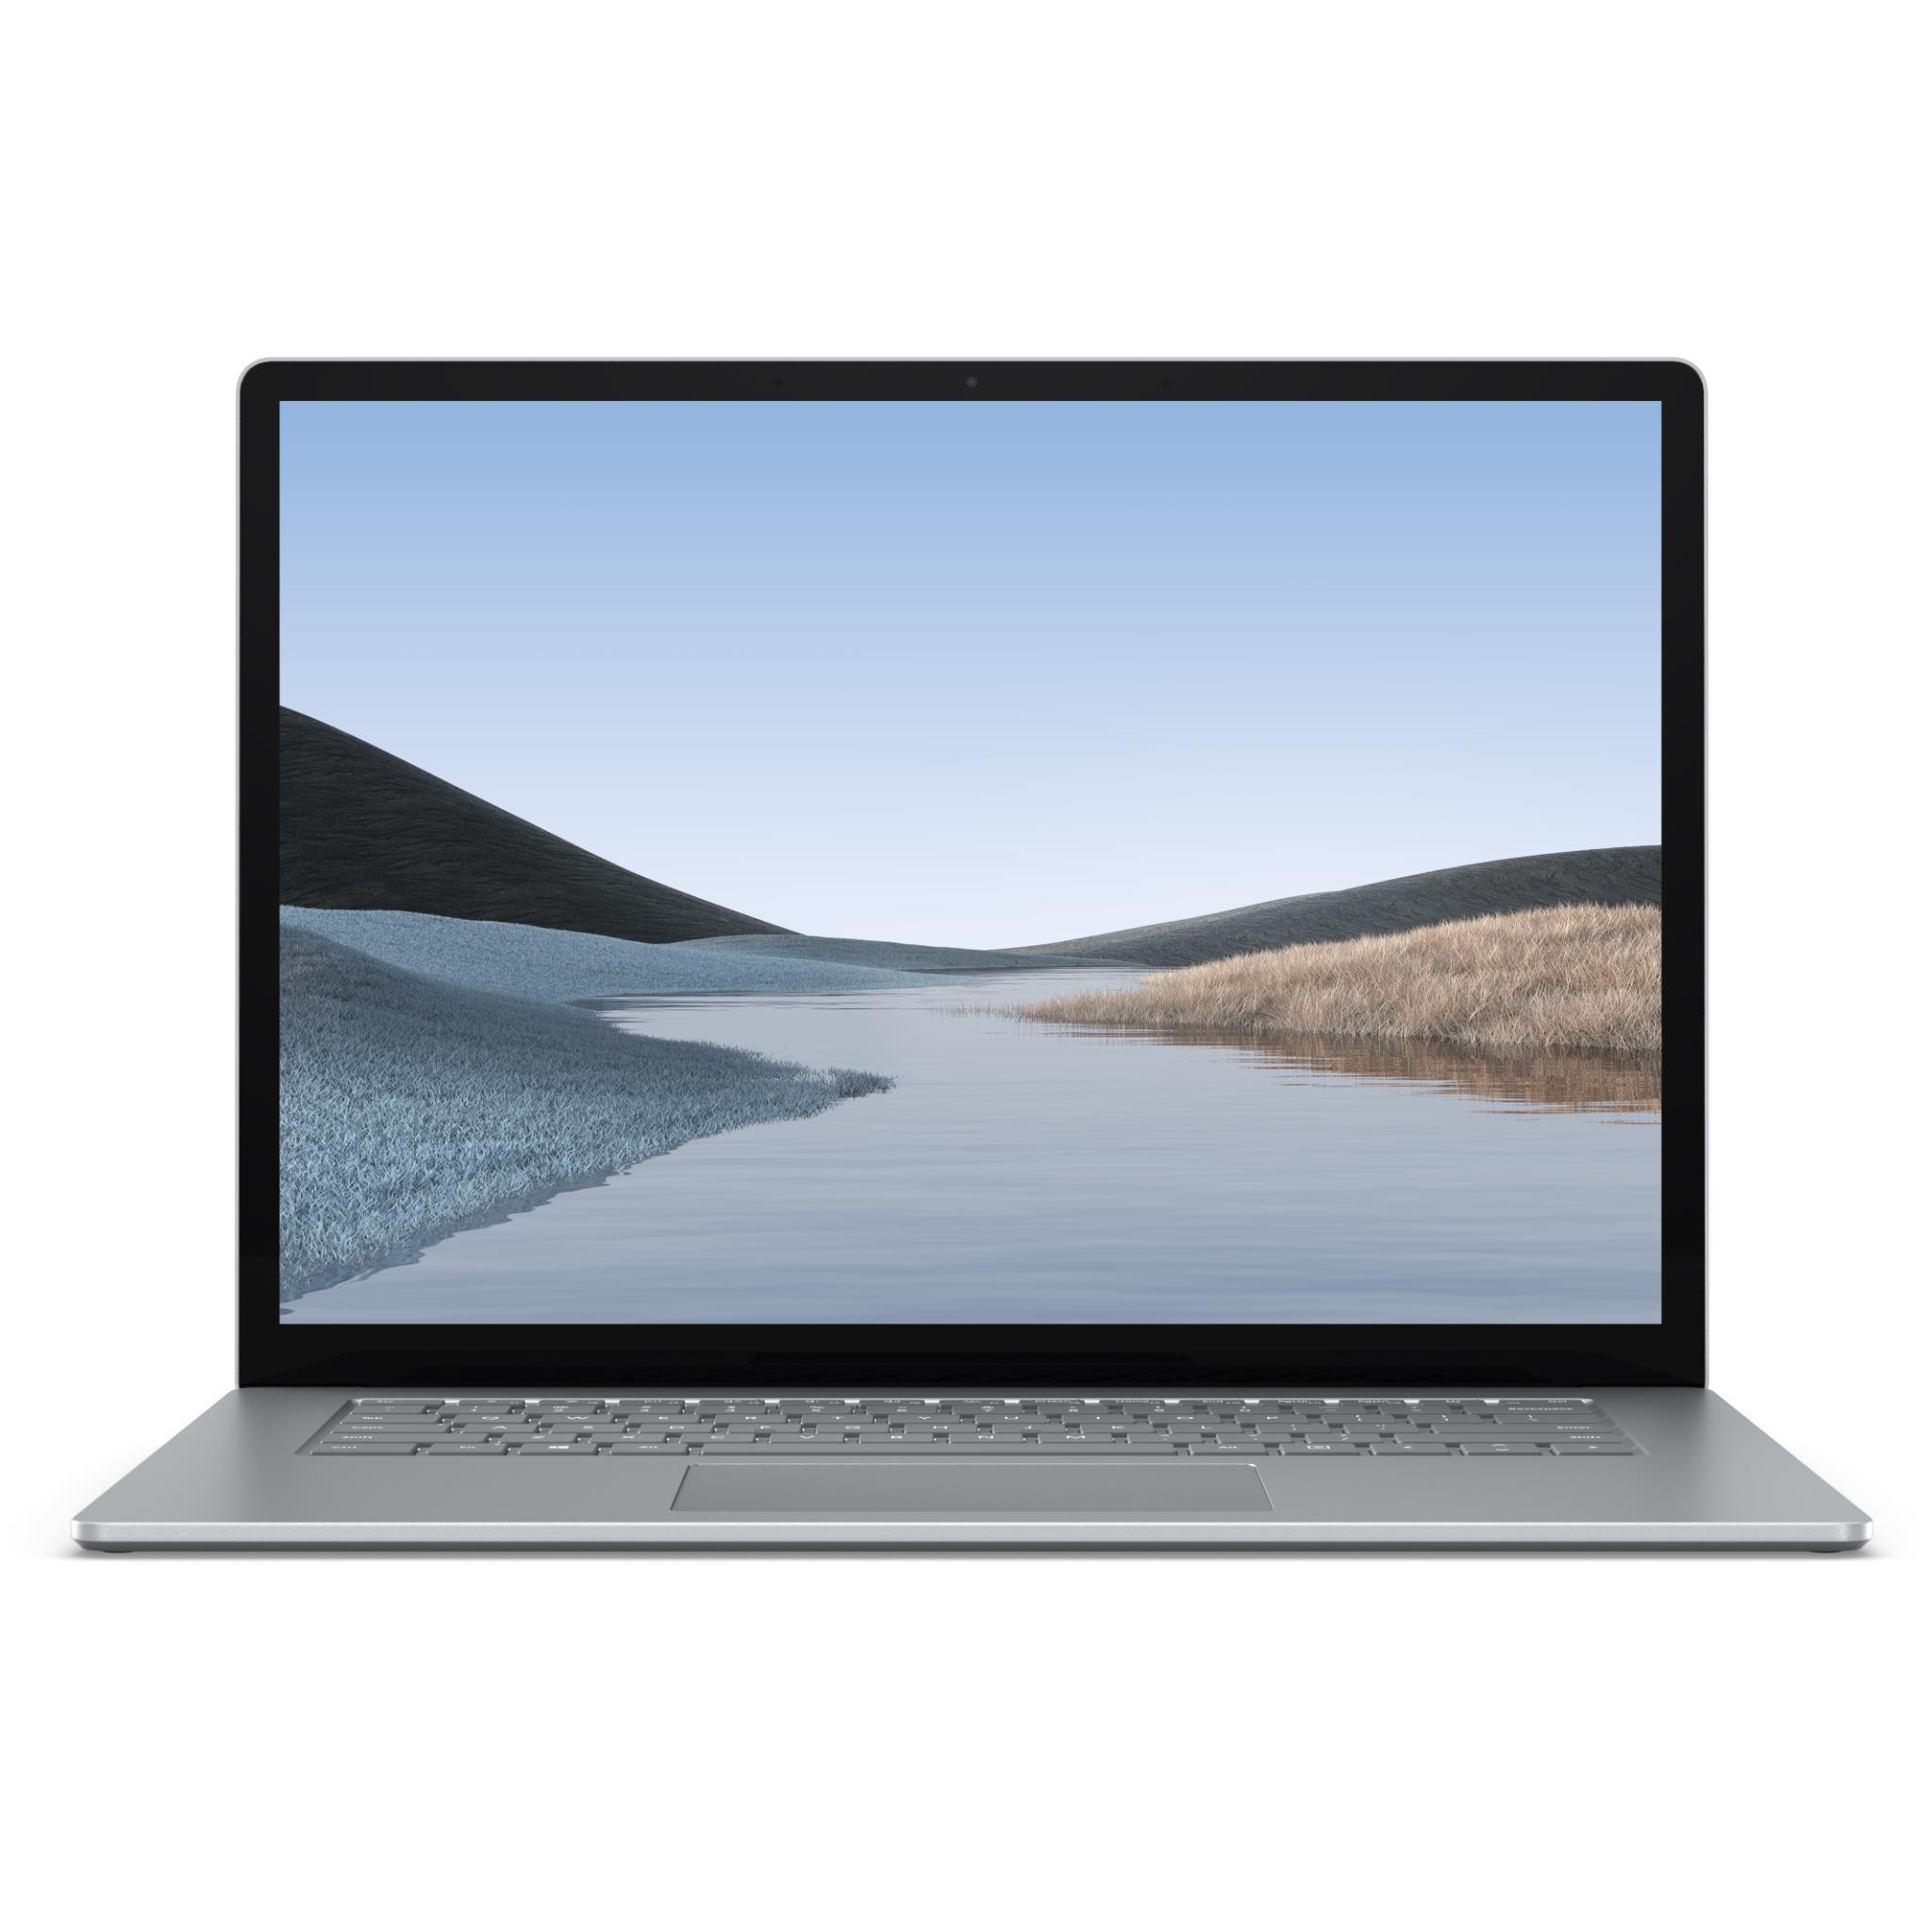 Microsoft Surface Laptop 3 15″ AMD 128GB (Platinum)